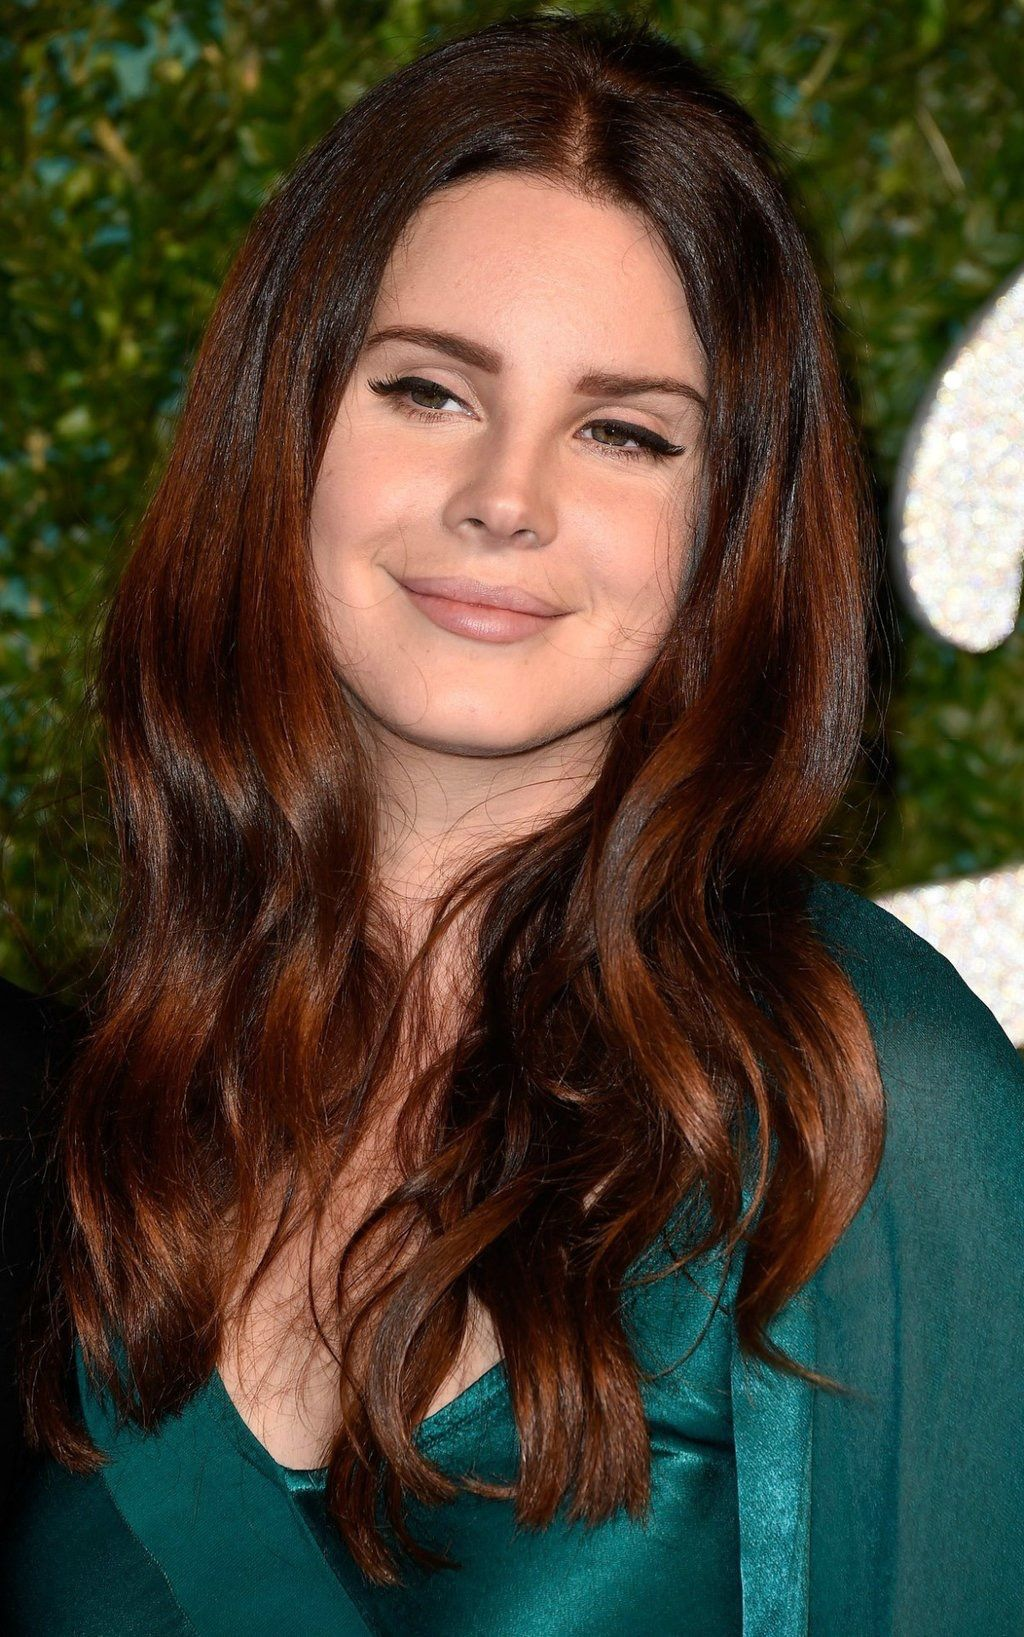 Lana Del Rey On The Red Carpet In A Green Dress Hair Color Auburn Red Brown Hair Hair Inspiration Color